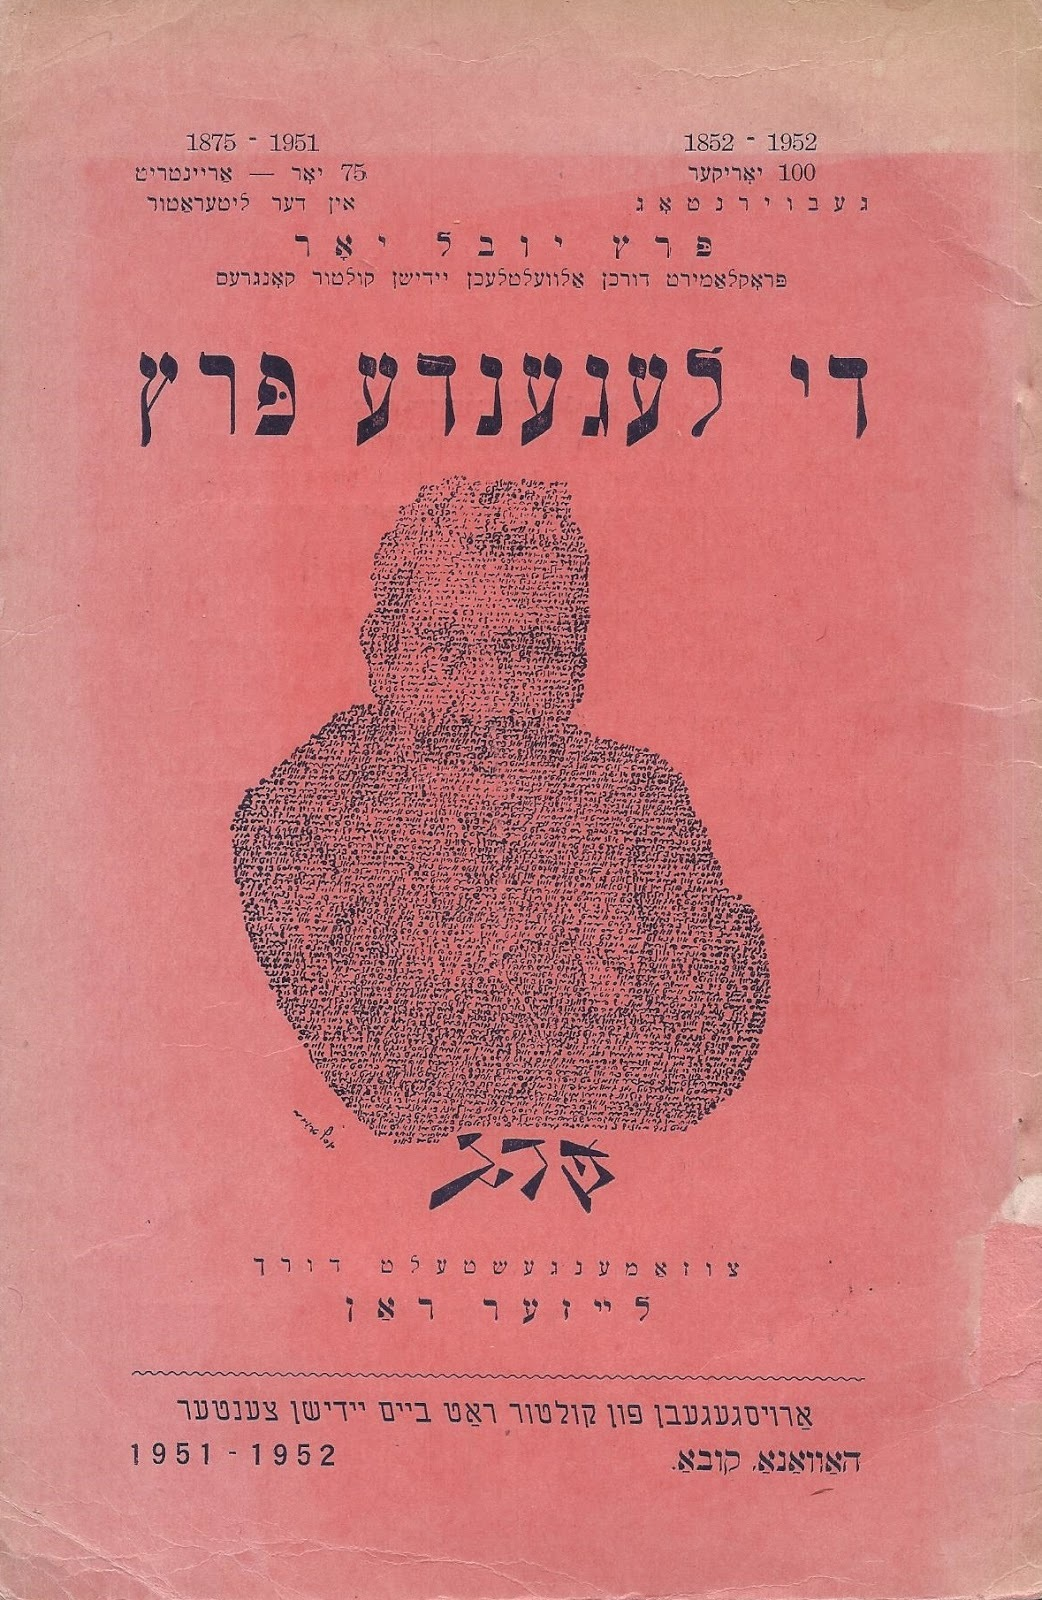 <p>Peretz on the cover of a Cuban publication of his work&nbsp;(1951-1952).</p>